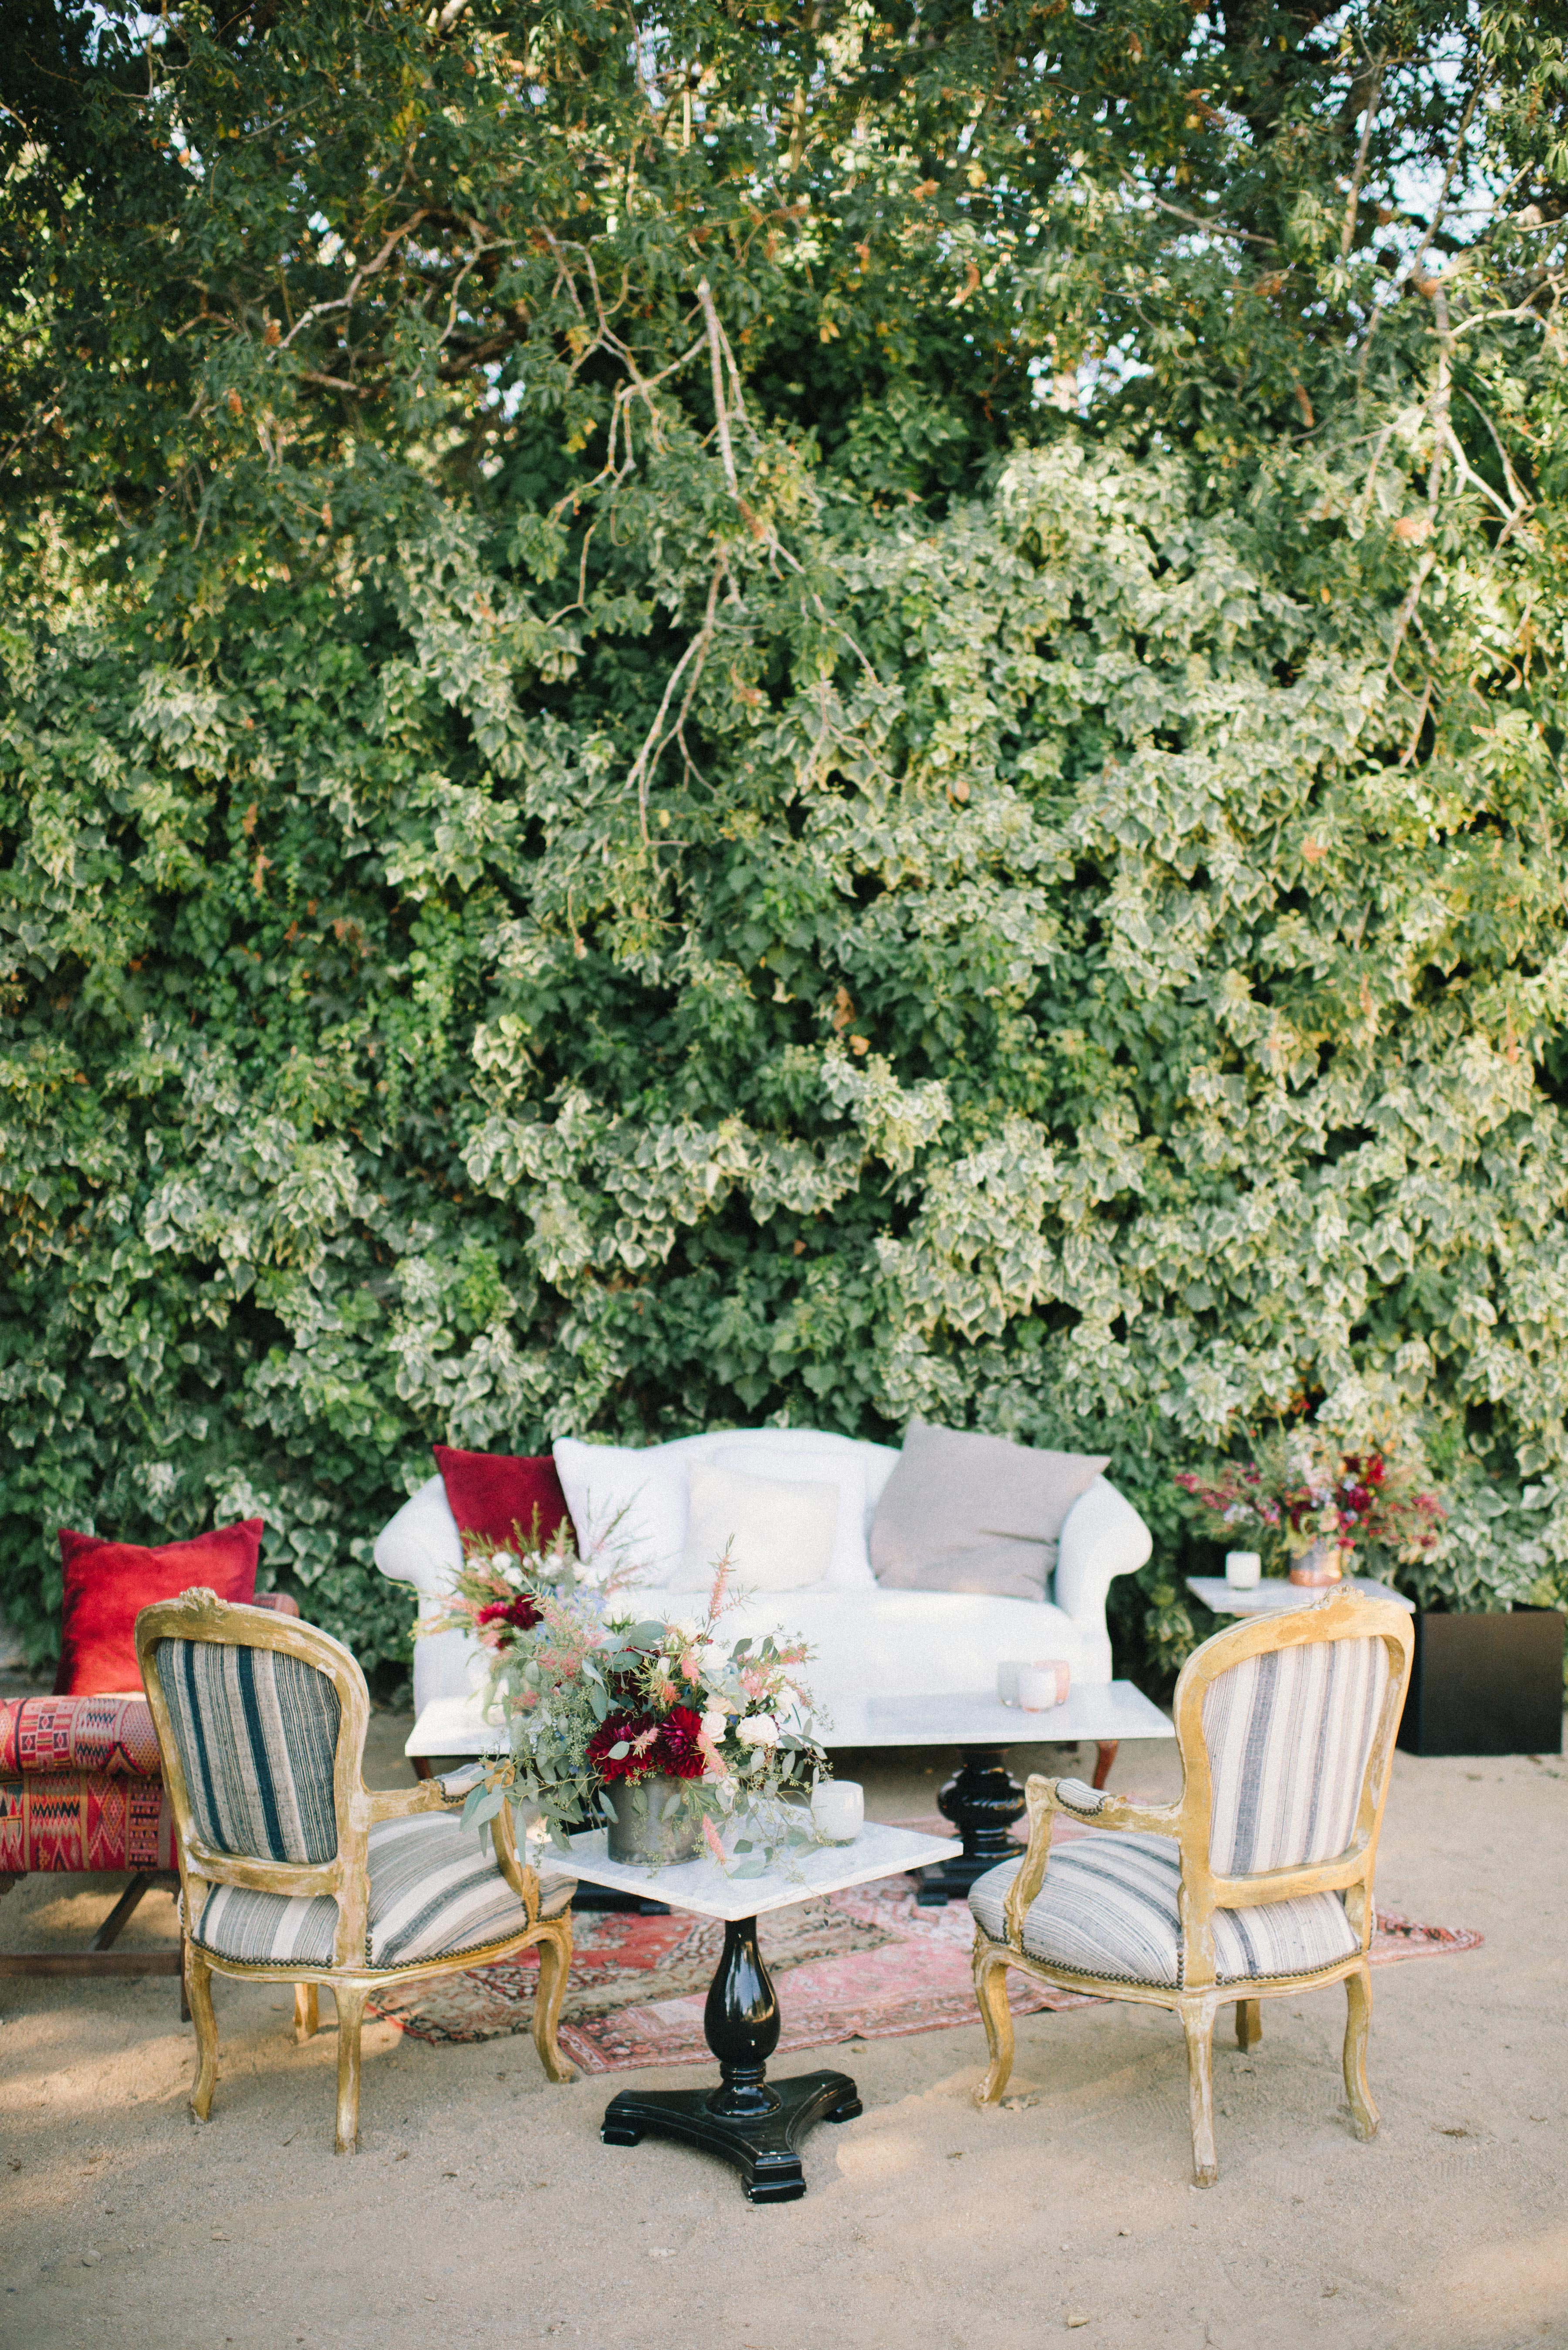 32 Wedding Lounge Ideas Your Guests Can Cozy Up To | Martha ...